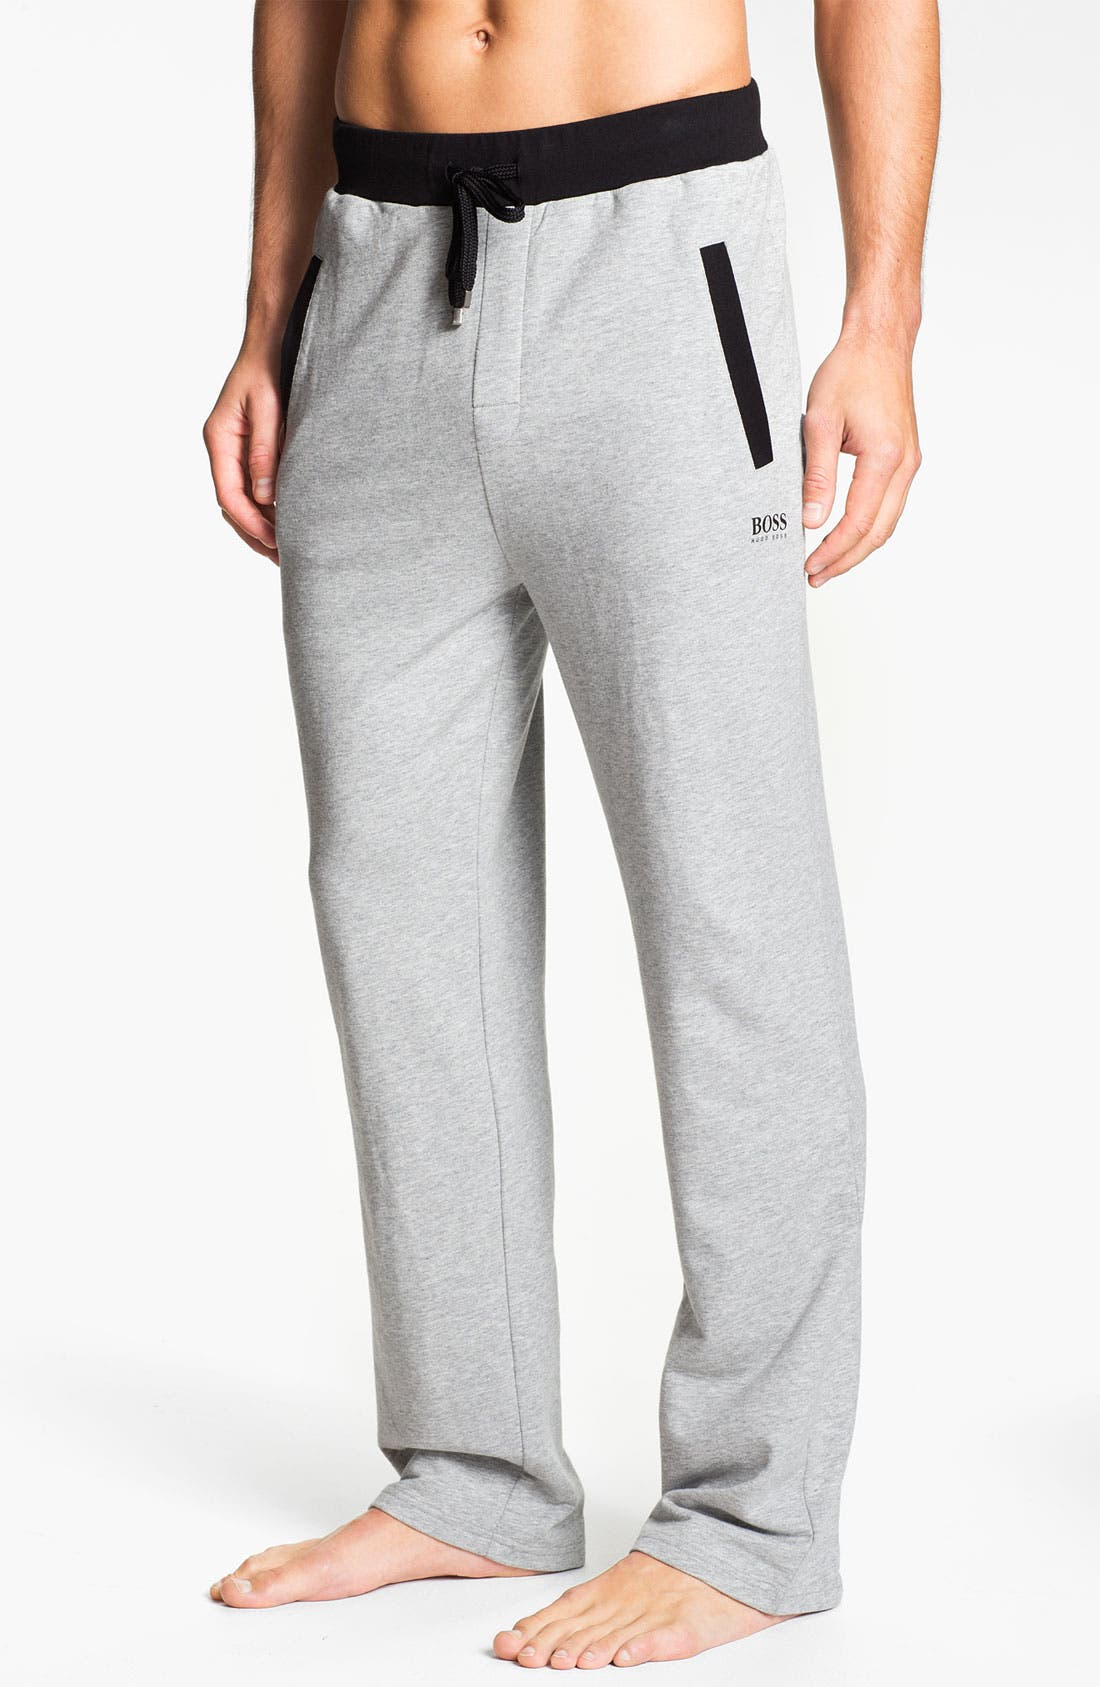 Alternate Image 1 Selected - BOSS Black 'Innovation 4' Lounge Pants